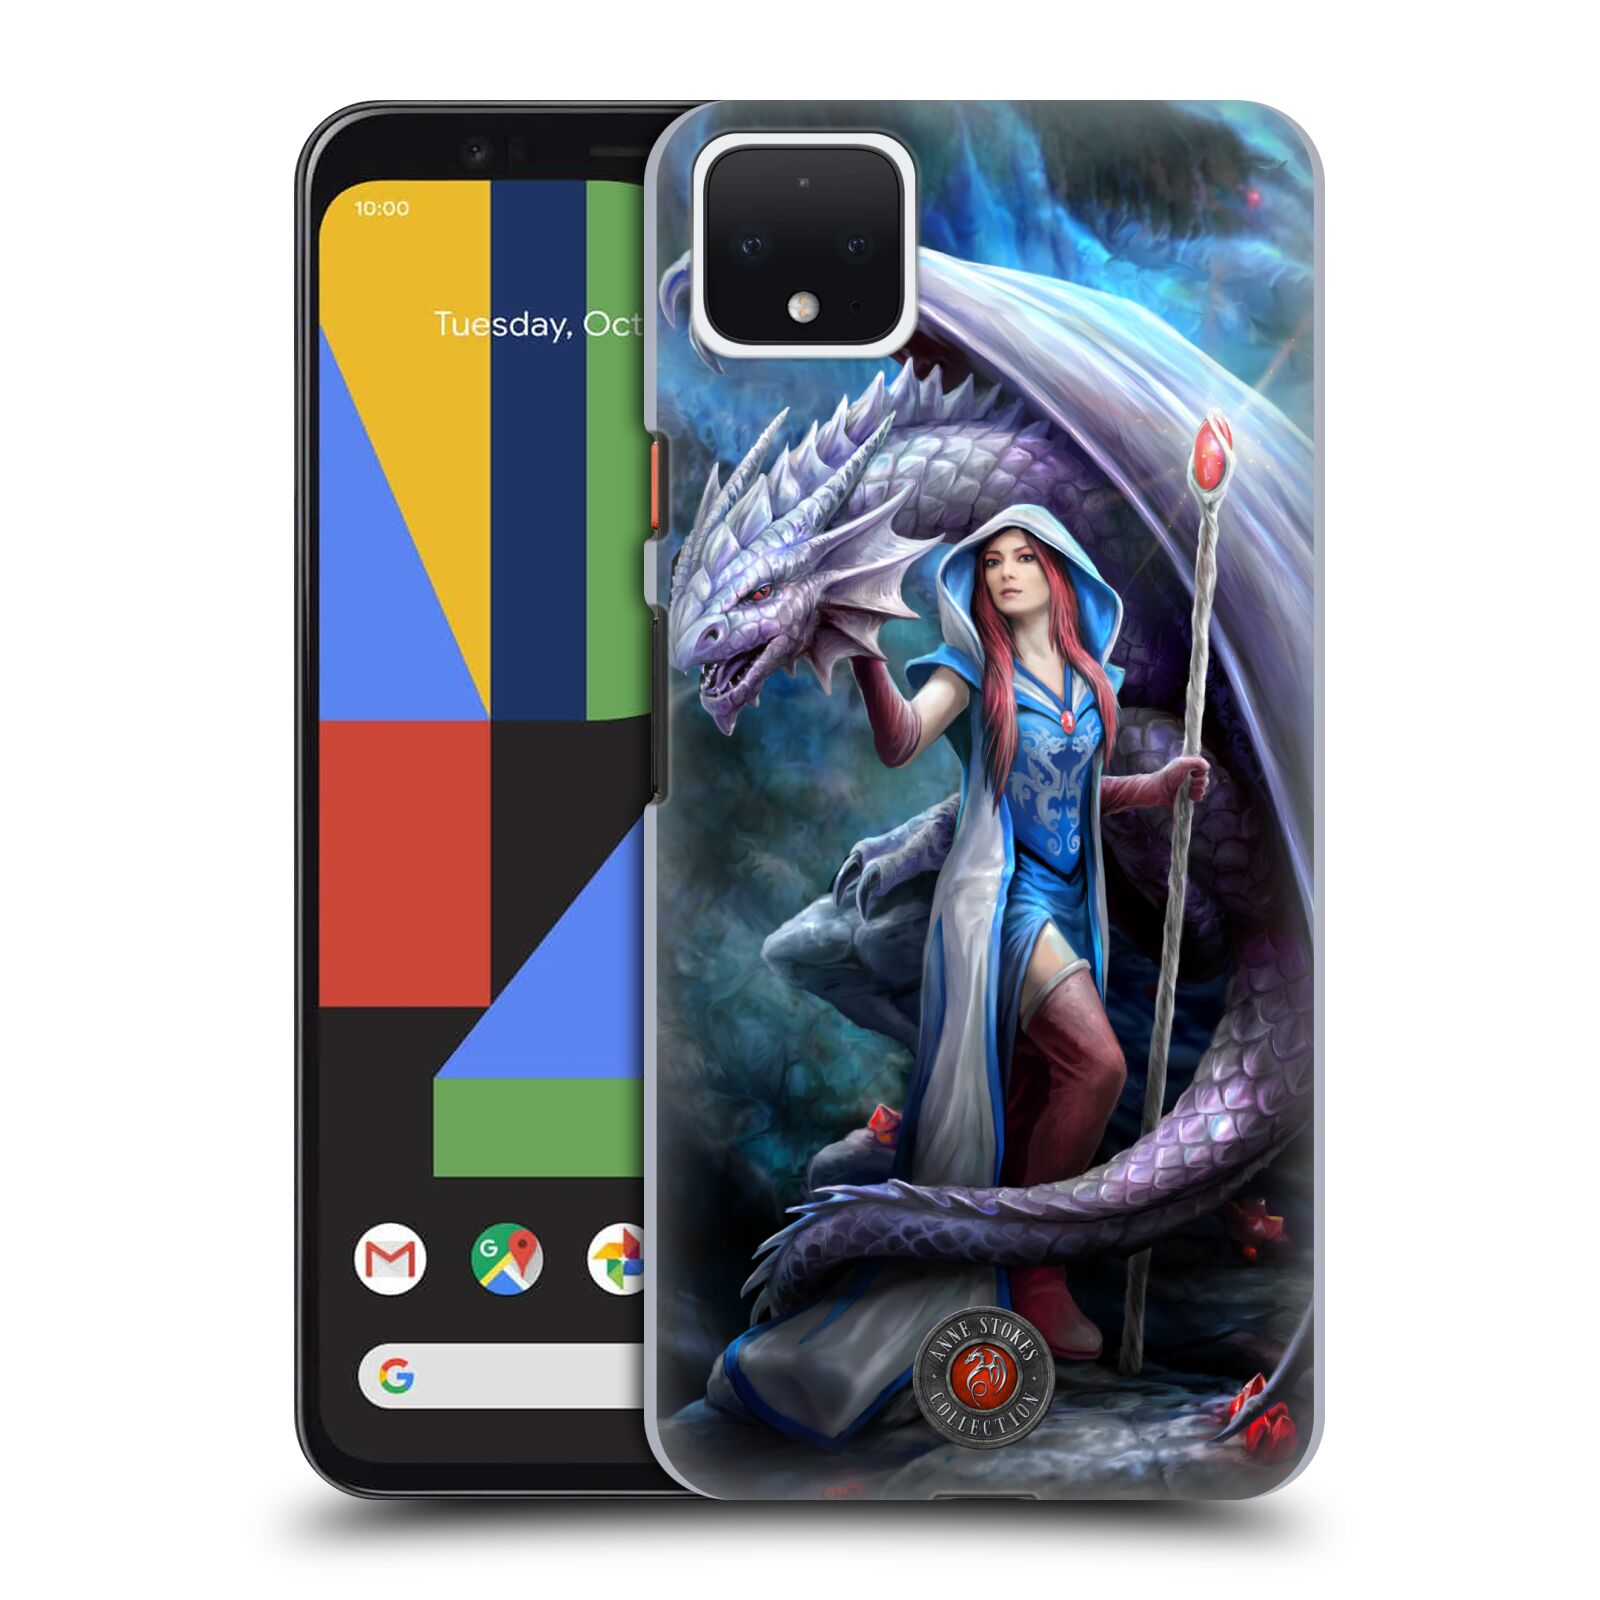 Official Anne Stokes Dragon Friendship 2 Mage Back Case for Google Pixel 4 XL